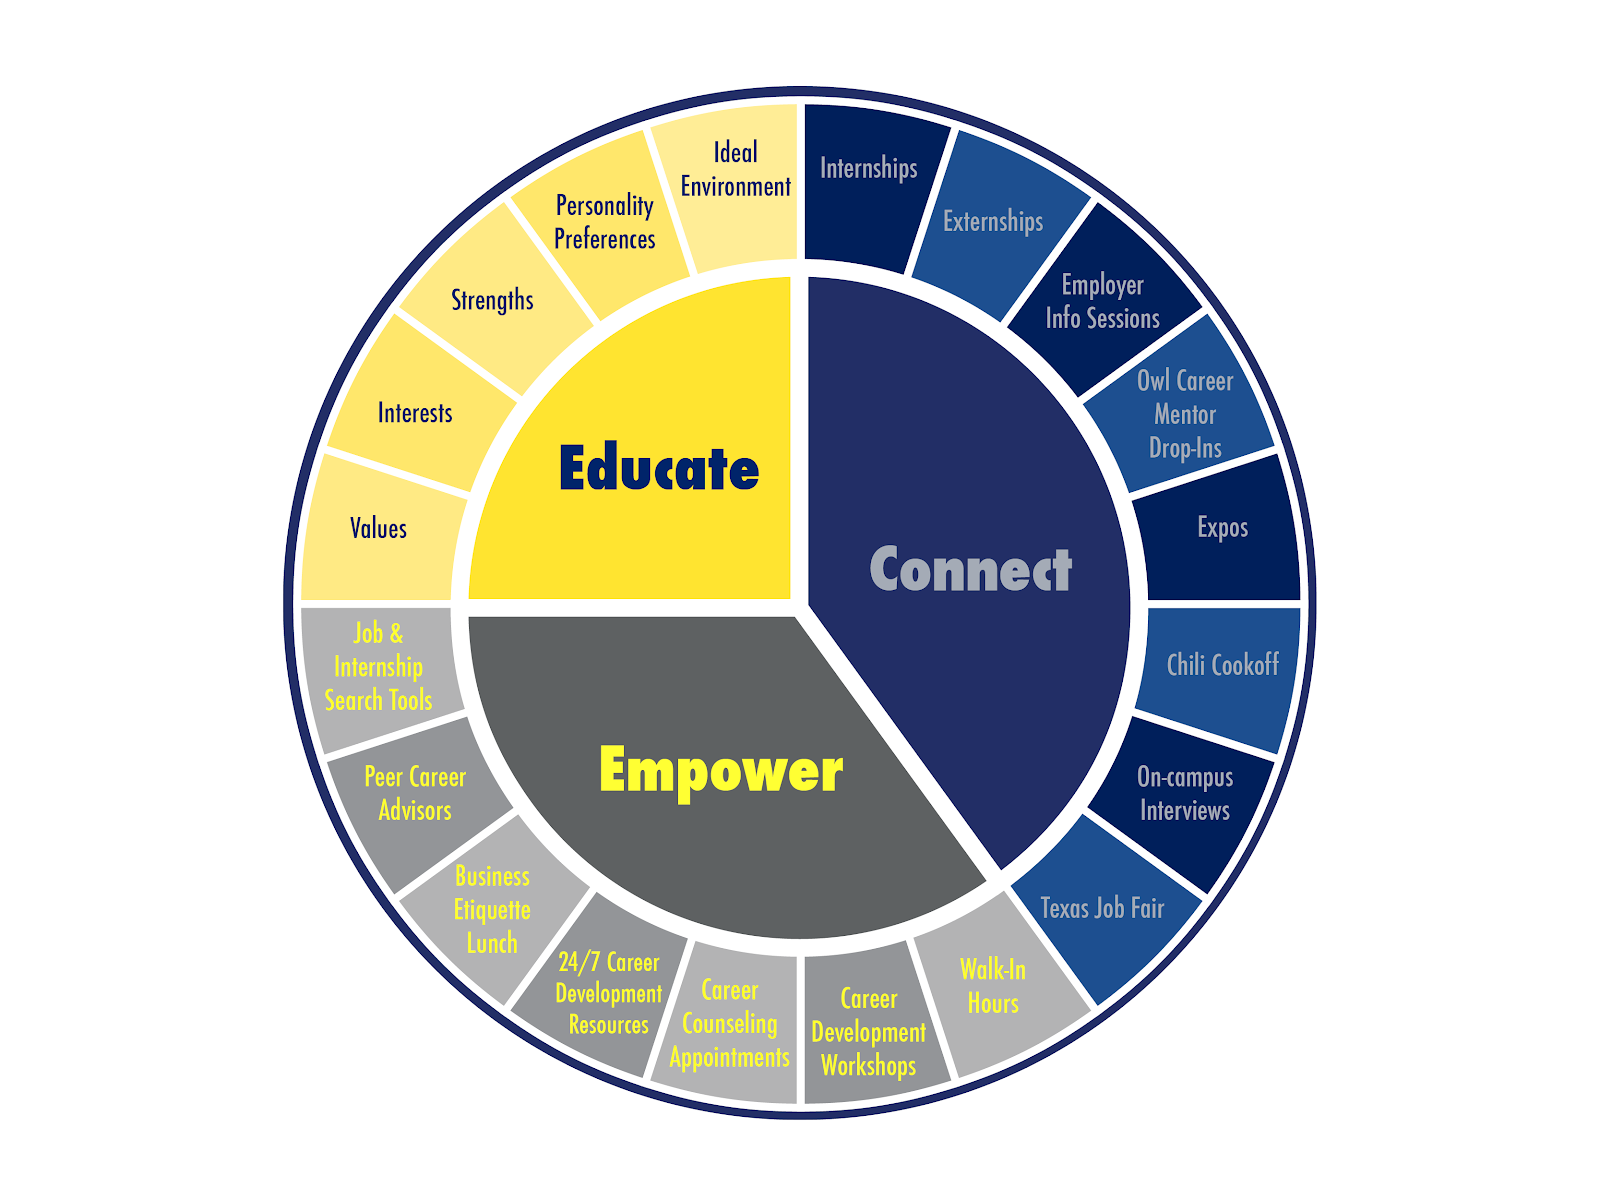 Glimpse of the Center for Career Development resources avaialble